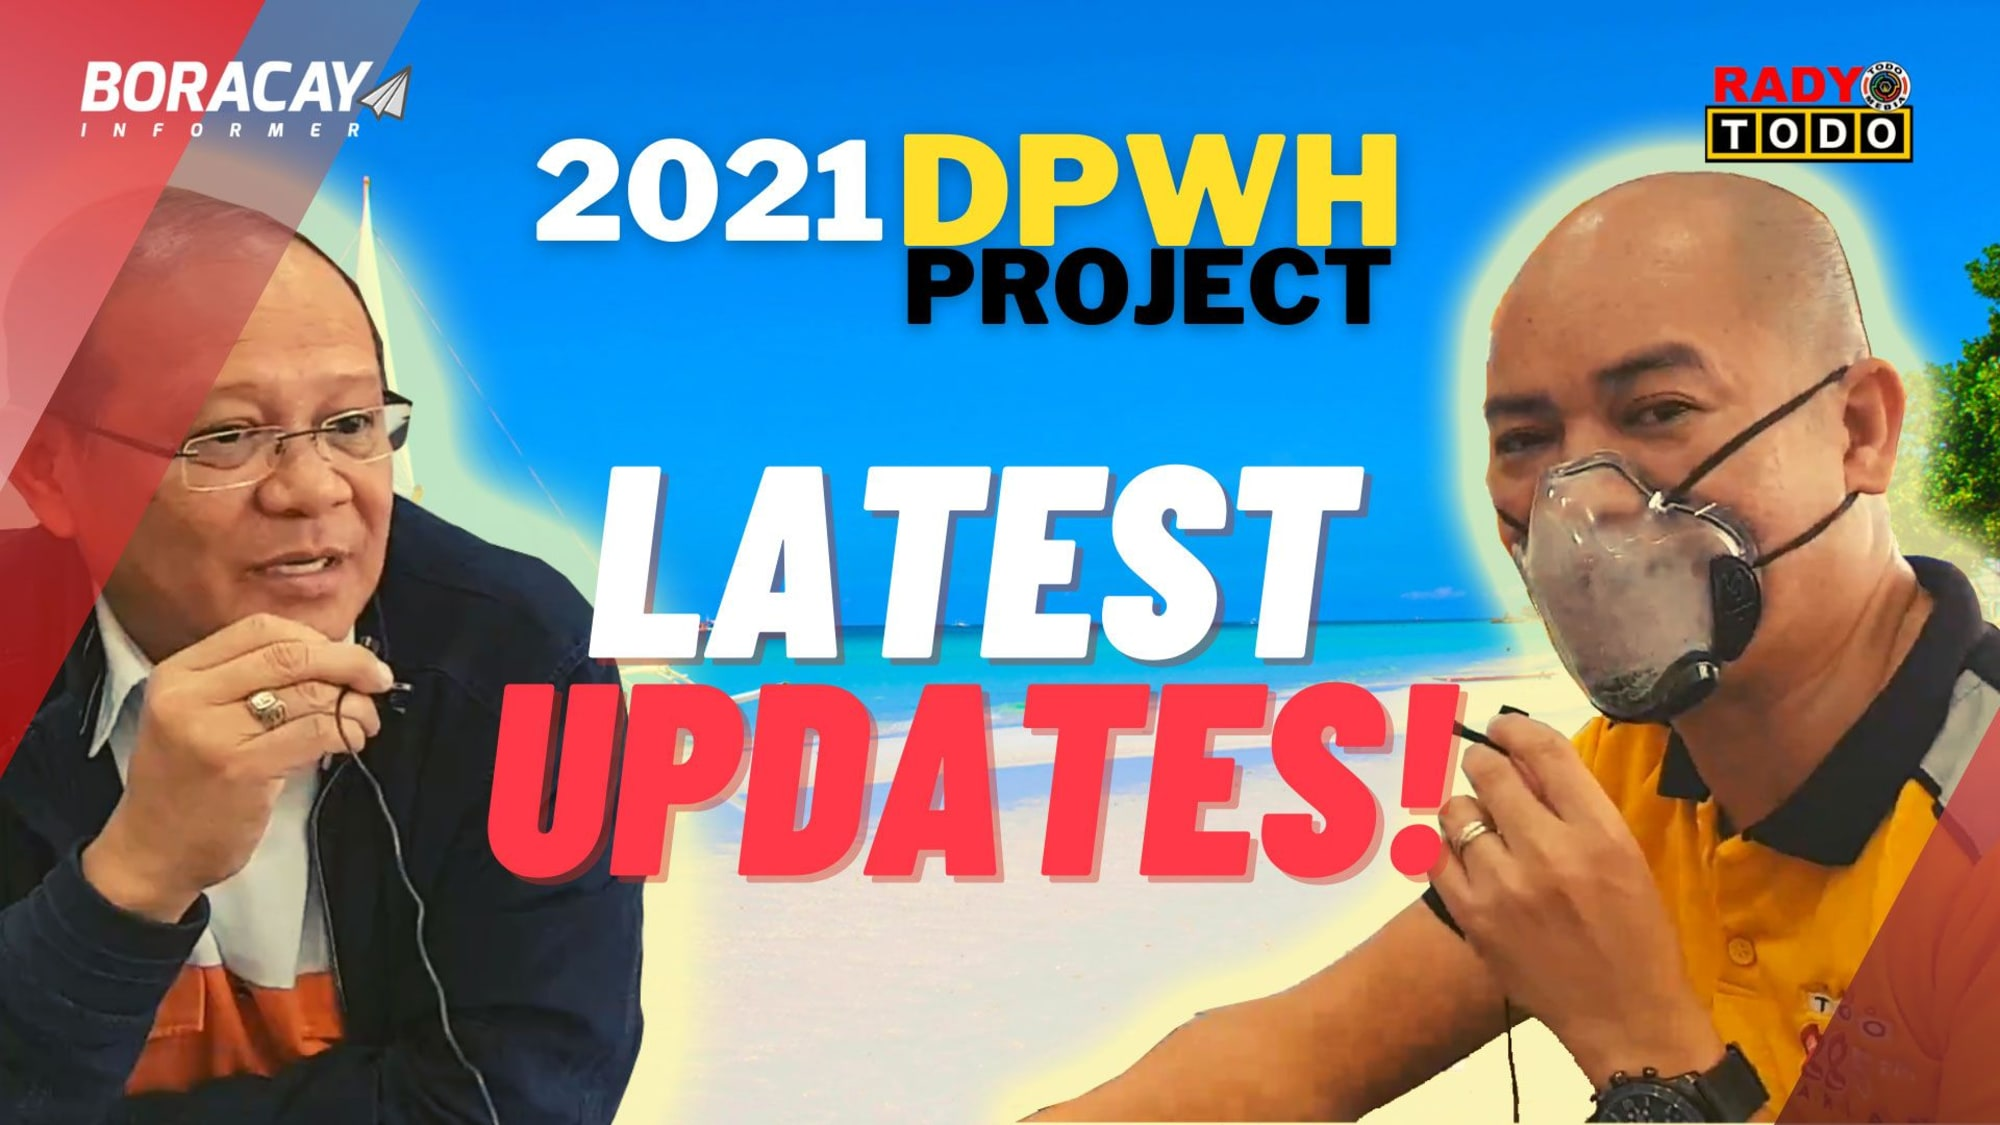 Latest updates on DPWH Projects in Boracay Explained - Asst. Regional Director Fruto